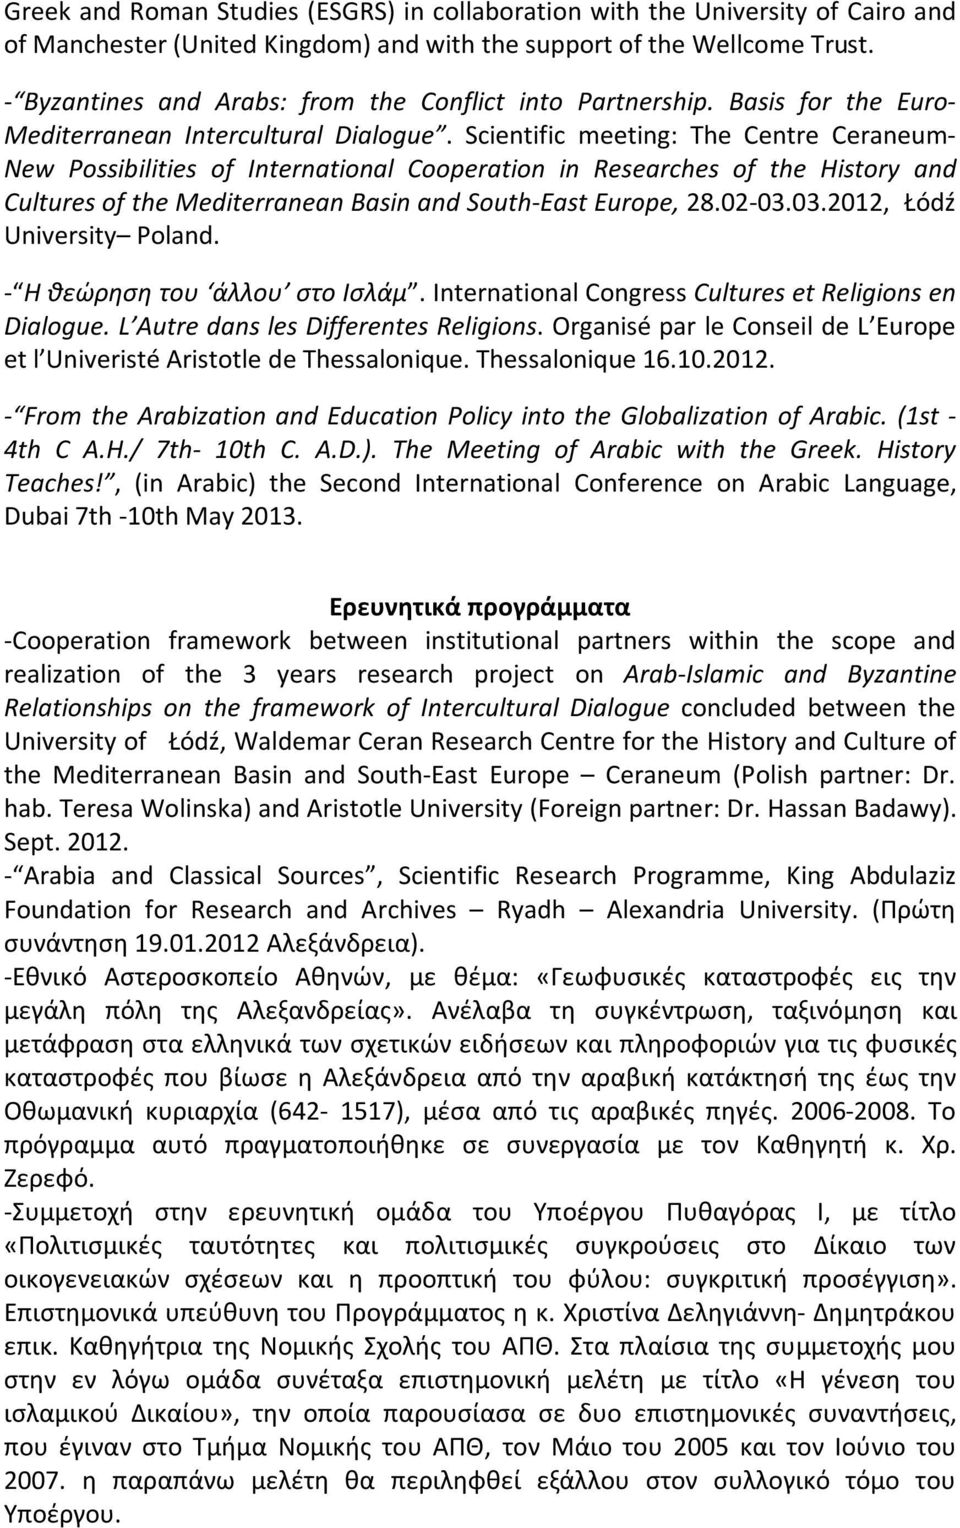 Scientific meeting: The Centre Ceraneum- New Possibilities of International Cooperation in Researches of the History and Cultures of the Mediterranean Basin and South-East Europe, 28.02-03.